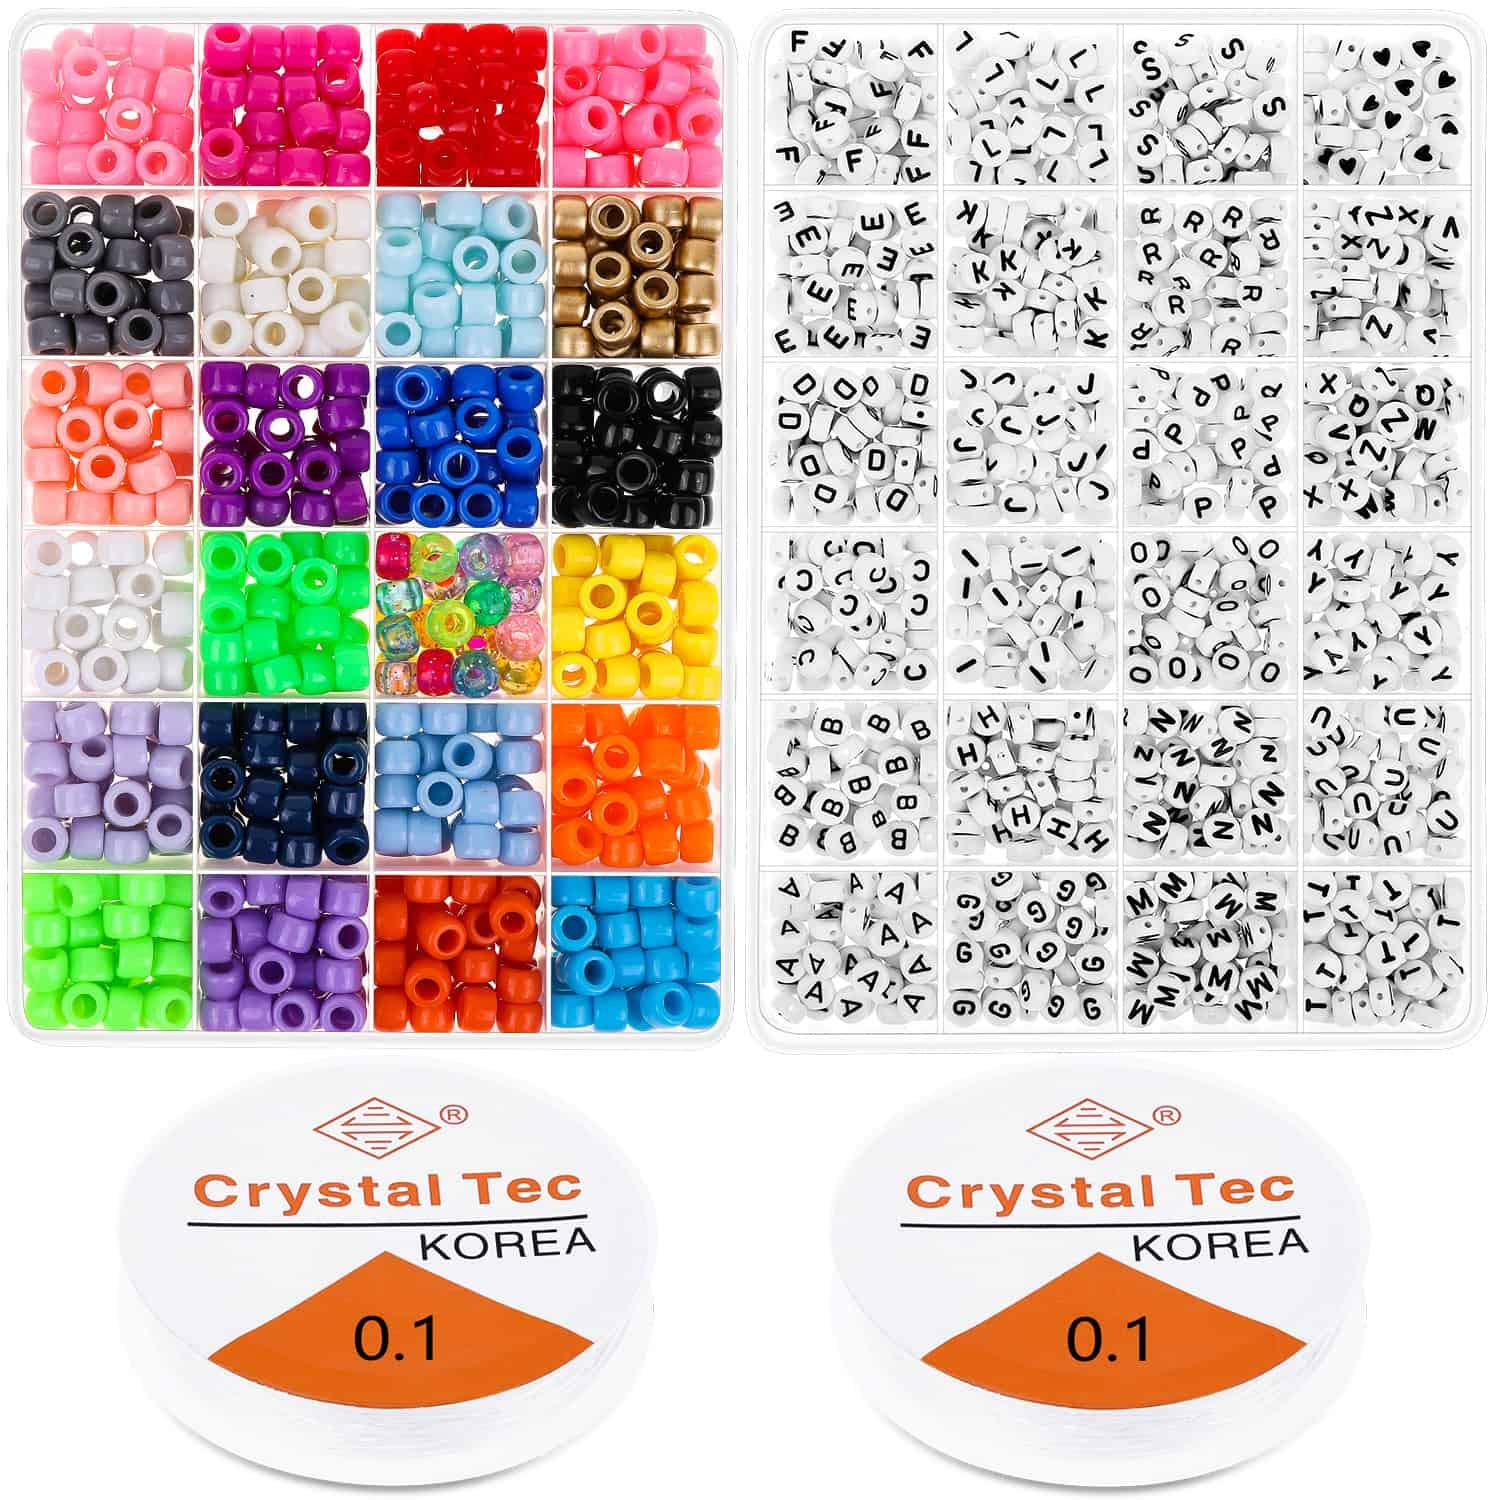 Pony Beads for Bracelets, Cridoz Bead Bracelet Making Kit Include 24 Colors Pastel Pony Beads and Letter Beads Round for Bracelets Jewelry Making